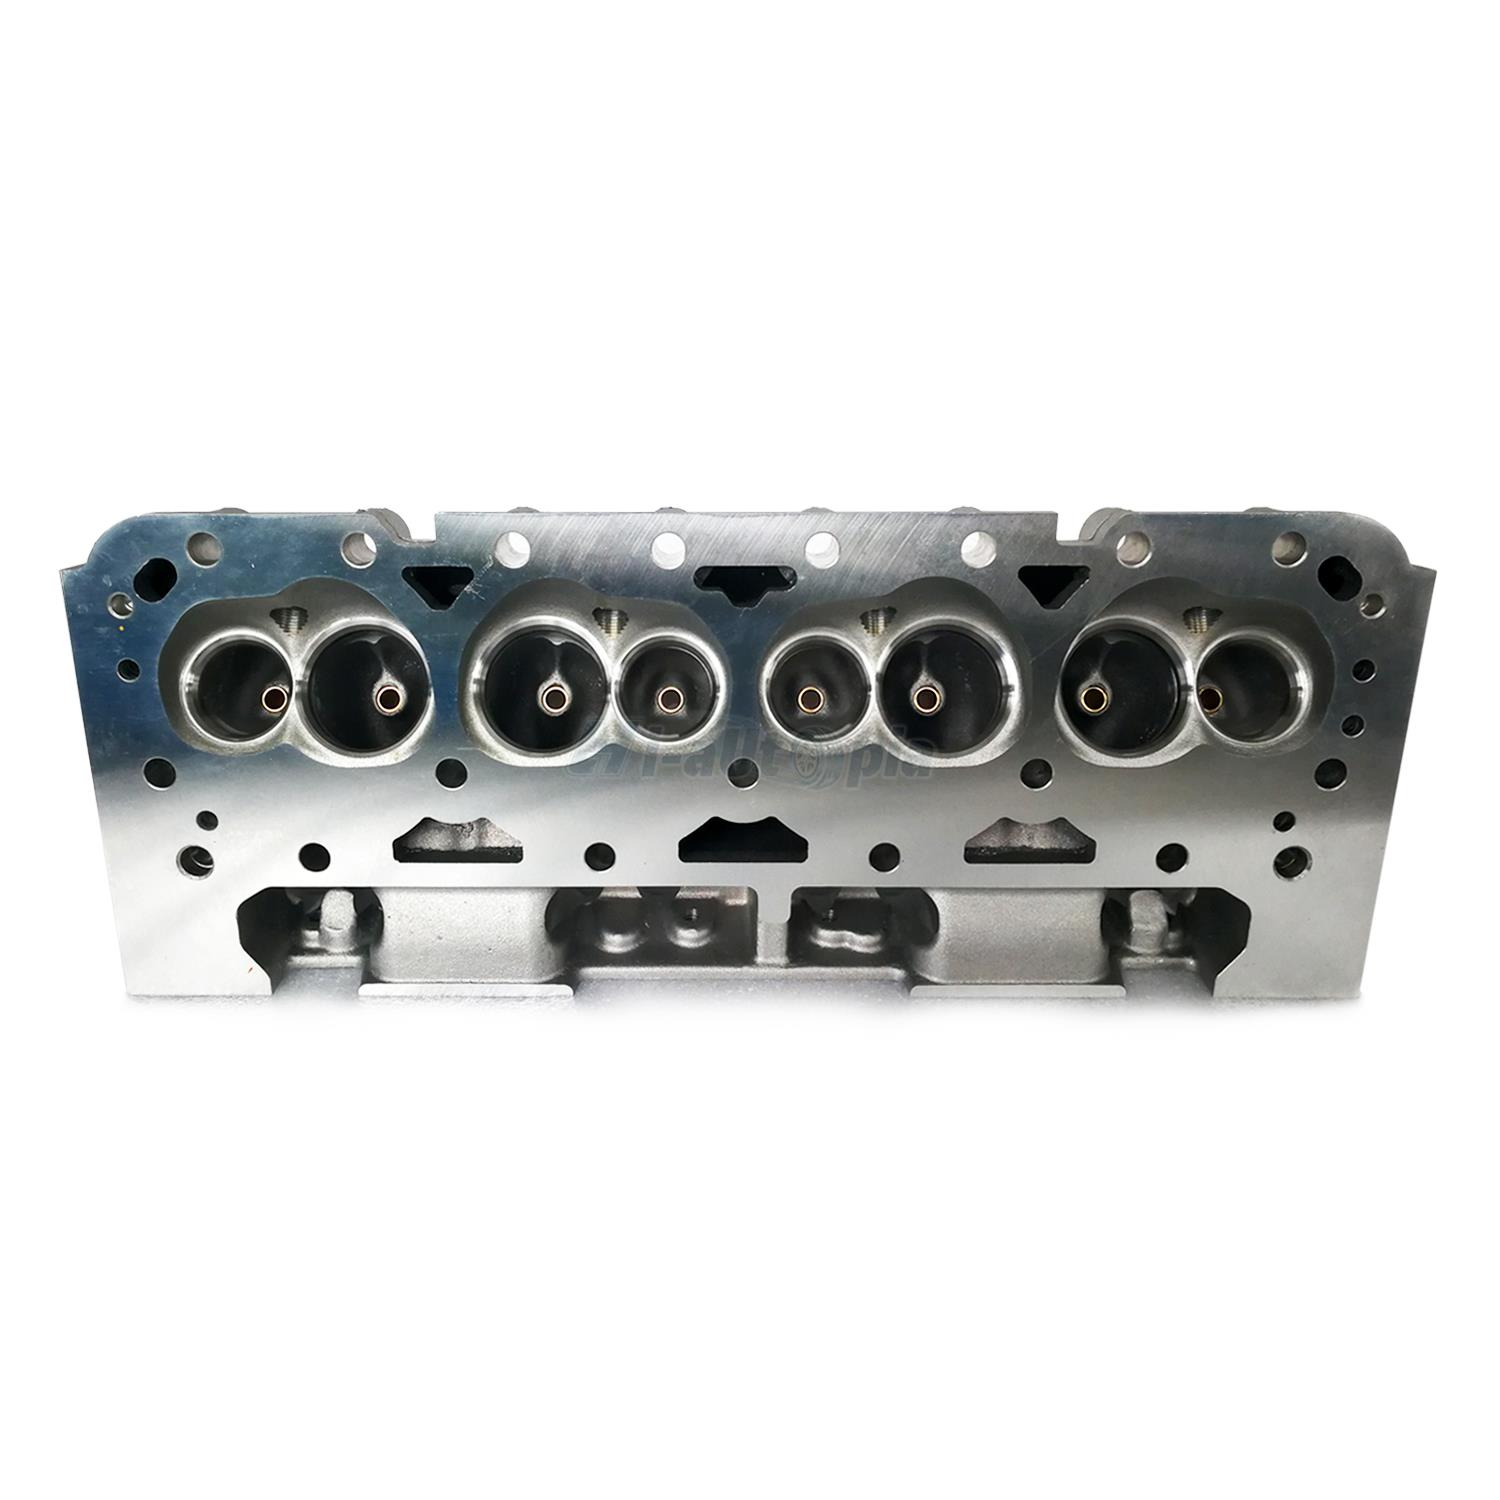 Aluminum Bare Cylinder Head For Chevy SBC 350 200cc 68cc